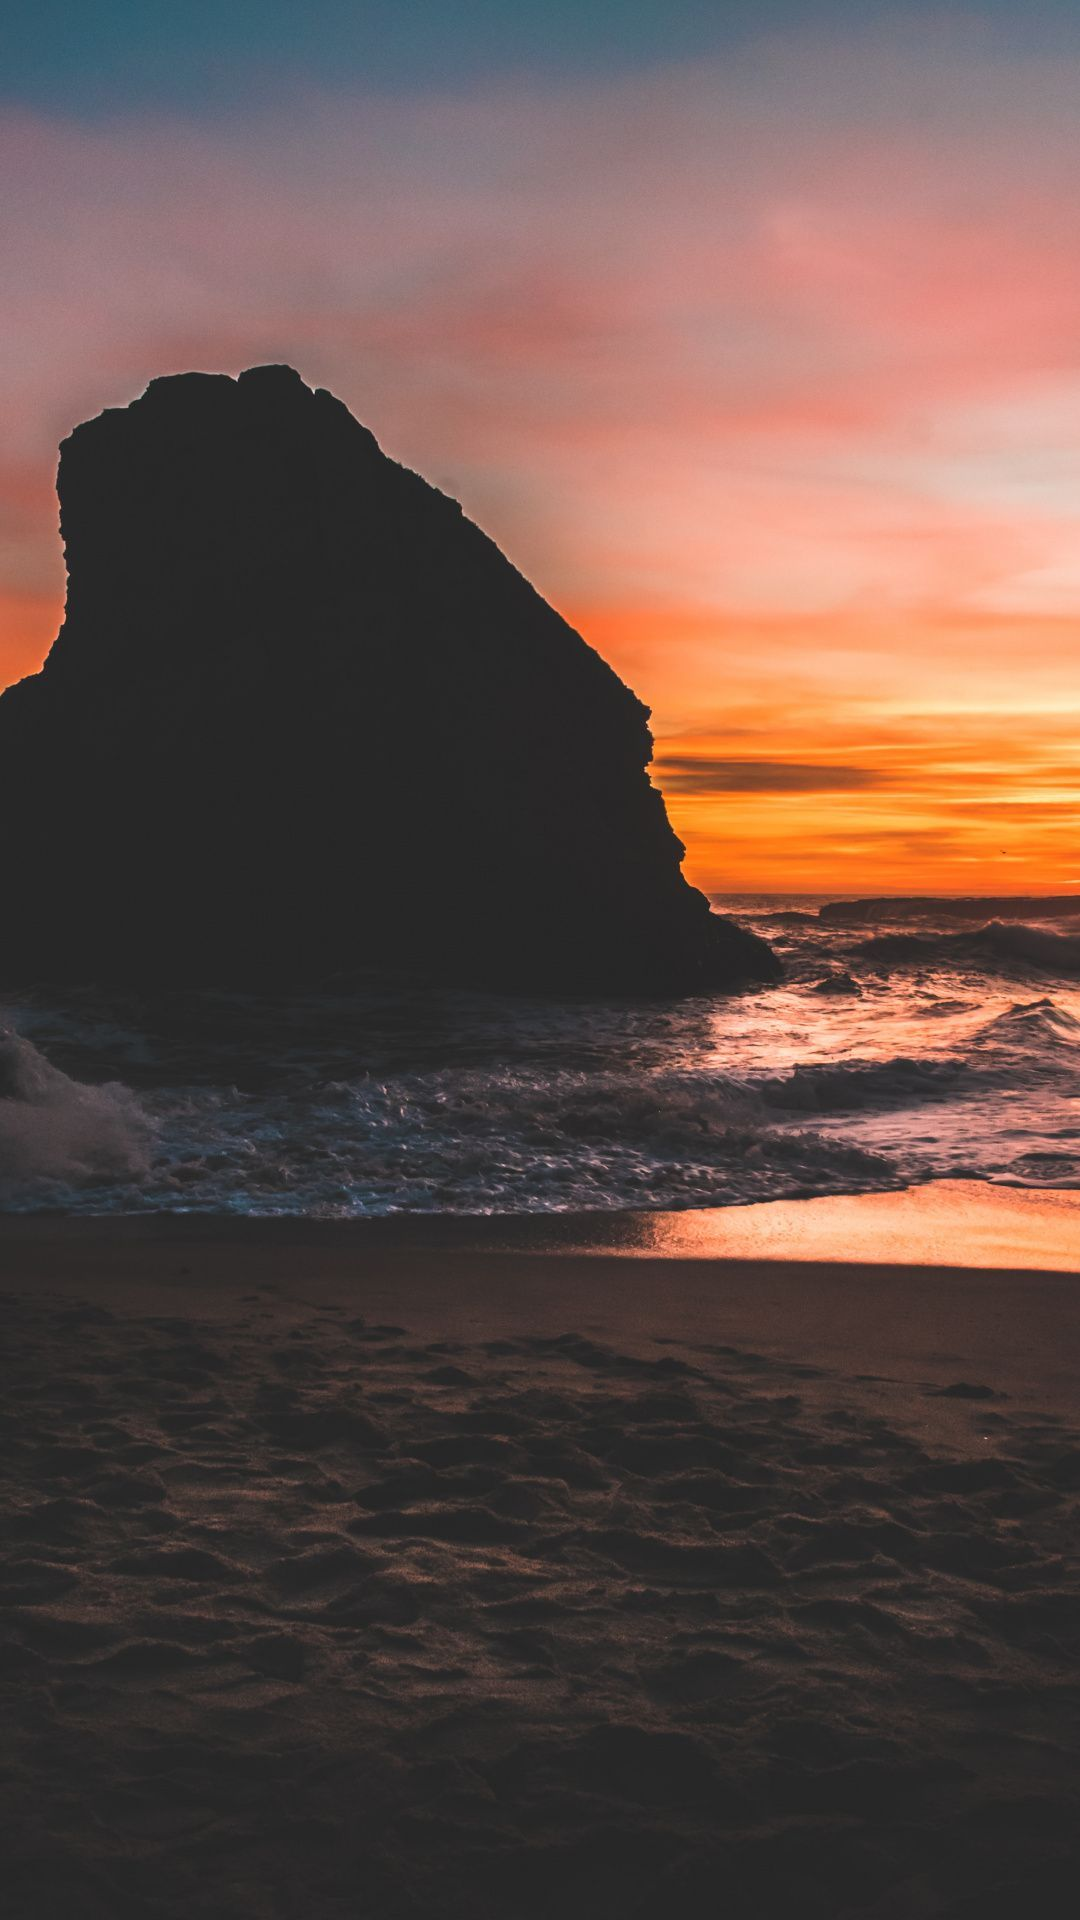 Aesthetic Beach Sunset Wallpapers Wallpaper Cave